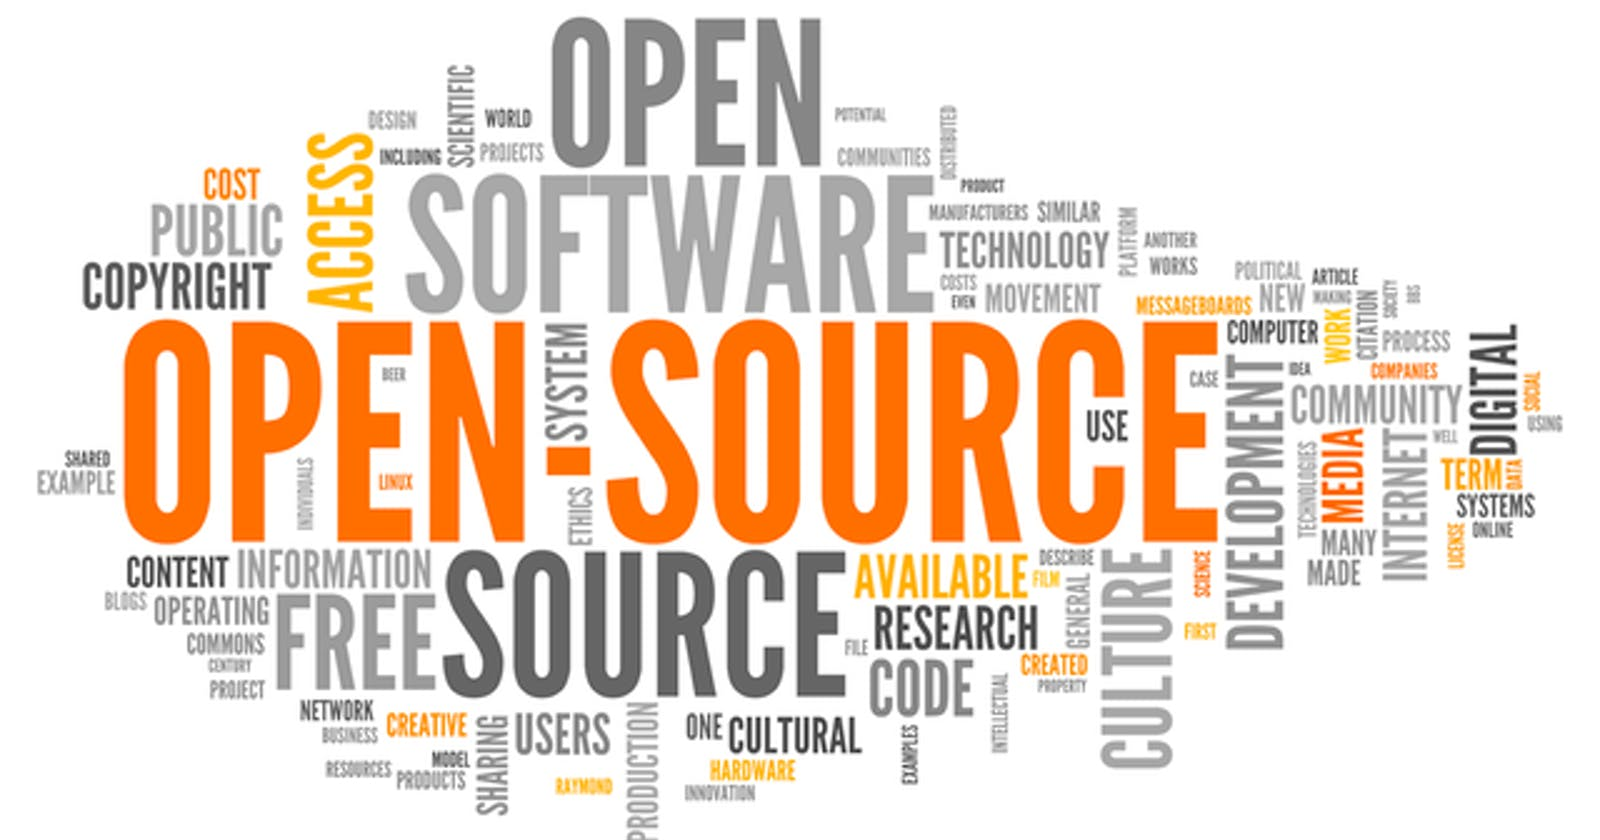 Steps to Open Source